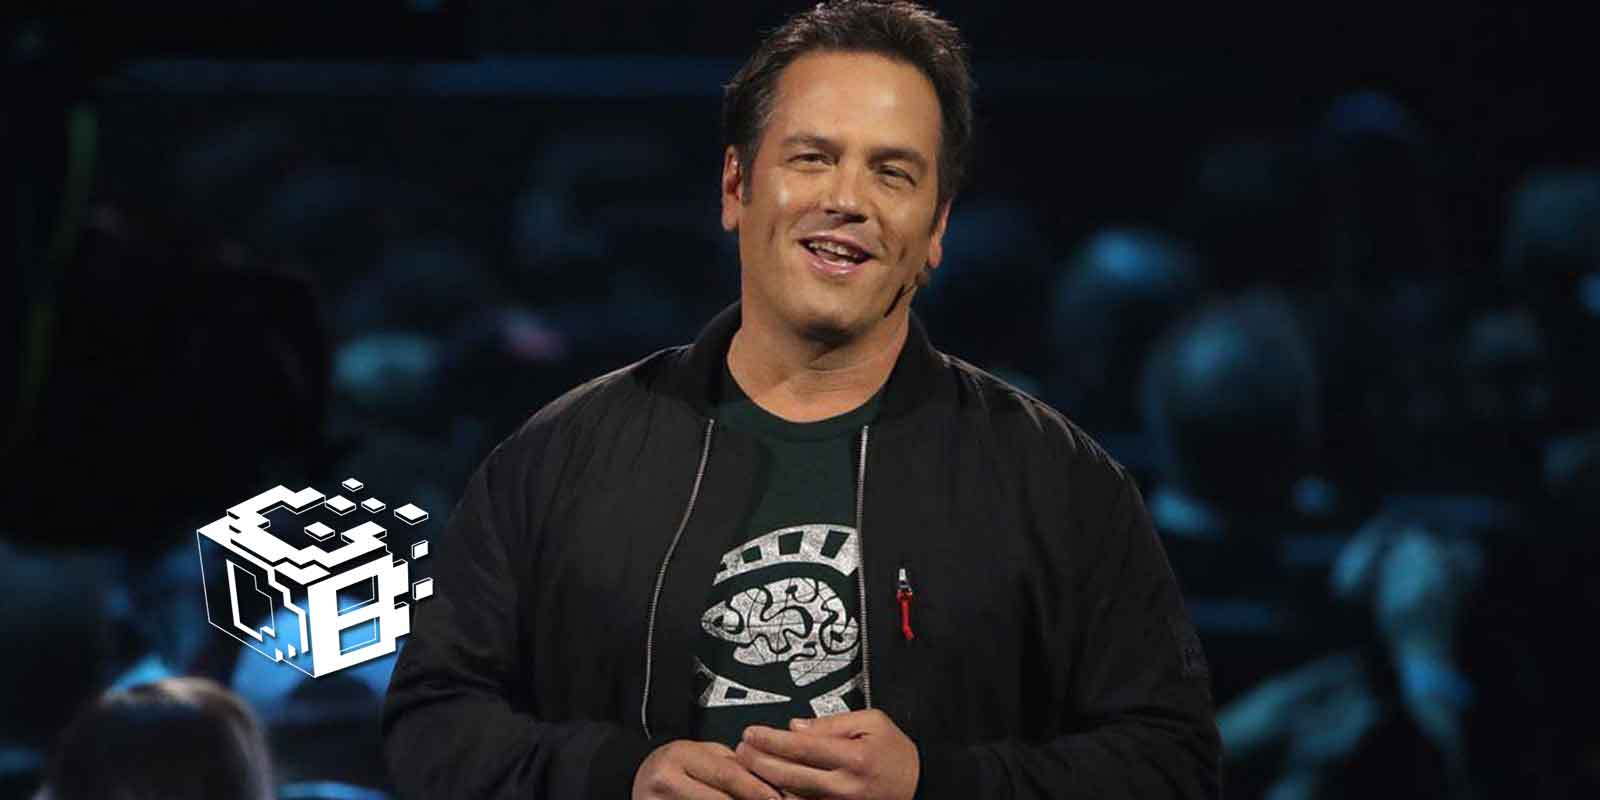 xbox-phil-spencer-halo-playstation-5-ps5-microsoft